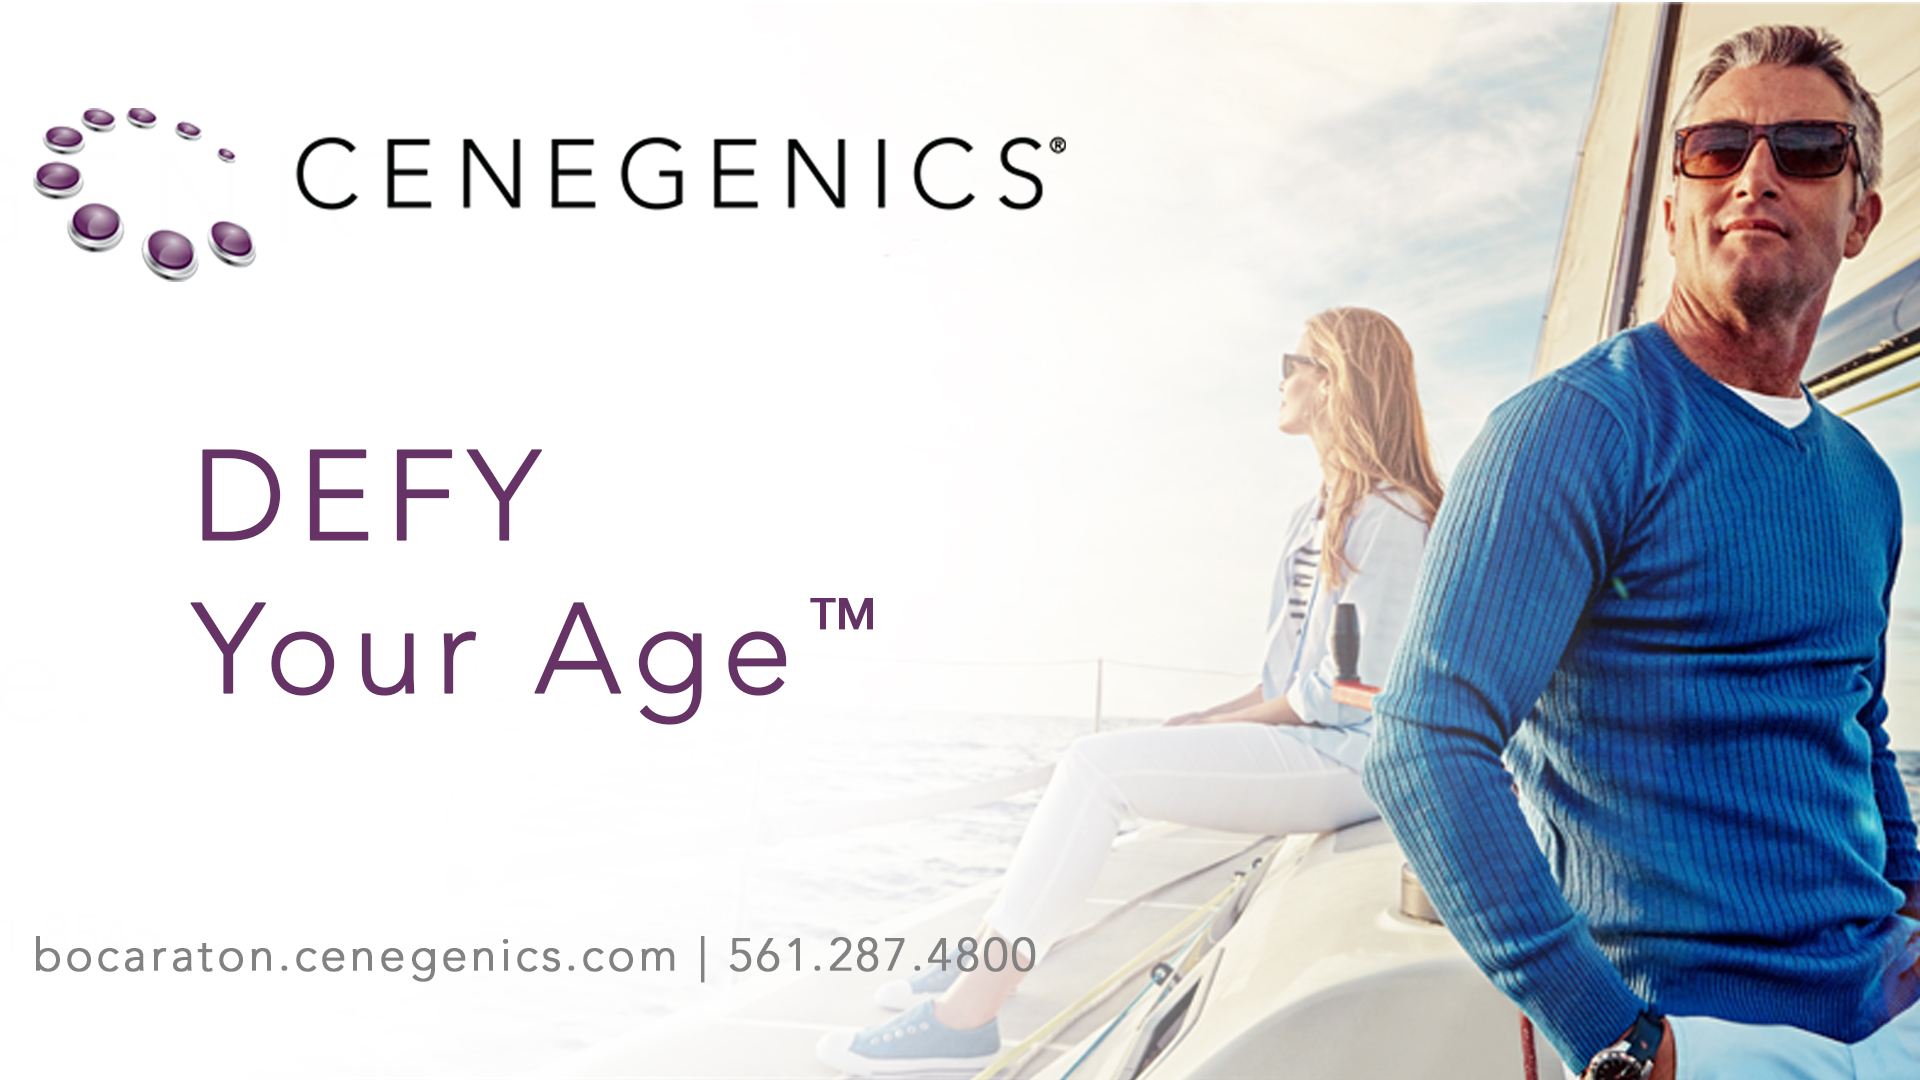 Cenegenics Boca Raton reviews | 5550 Glades Rd - Boca Raton FL